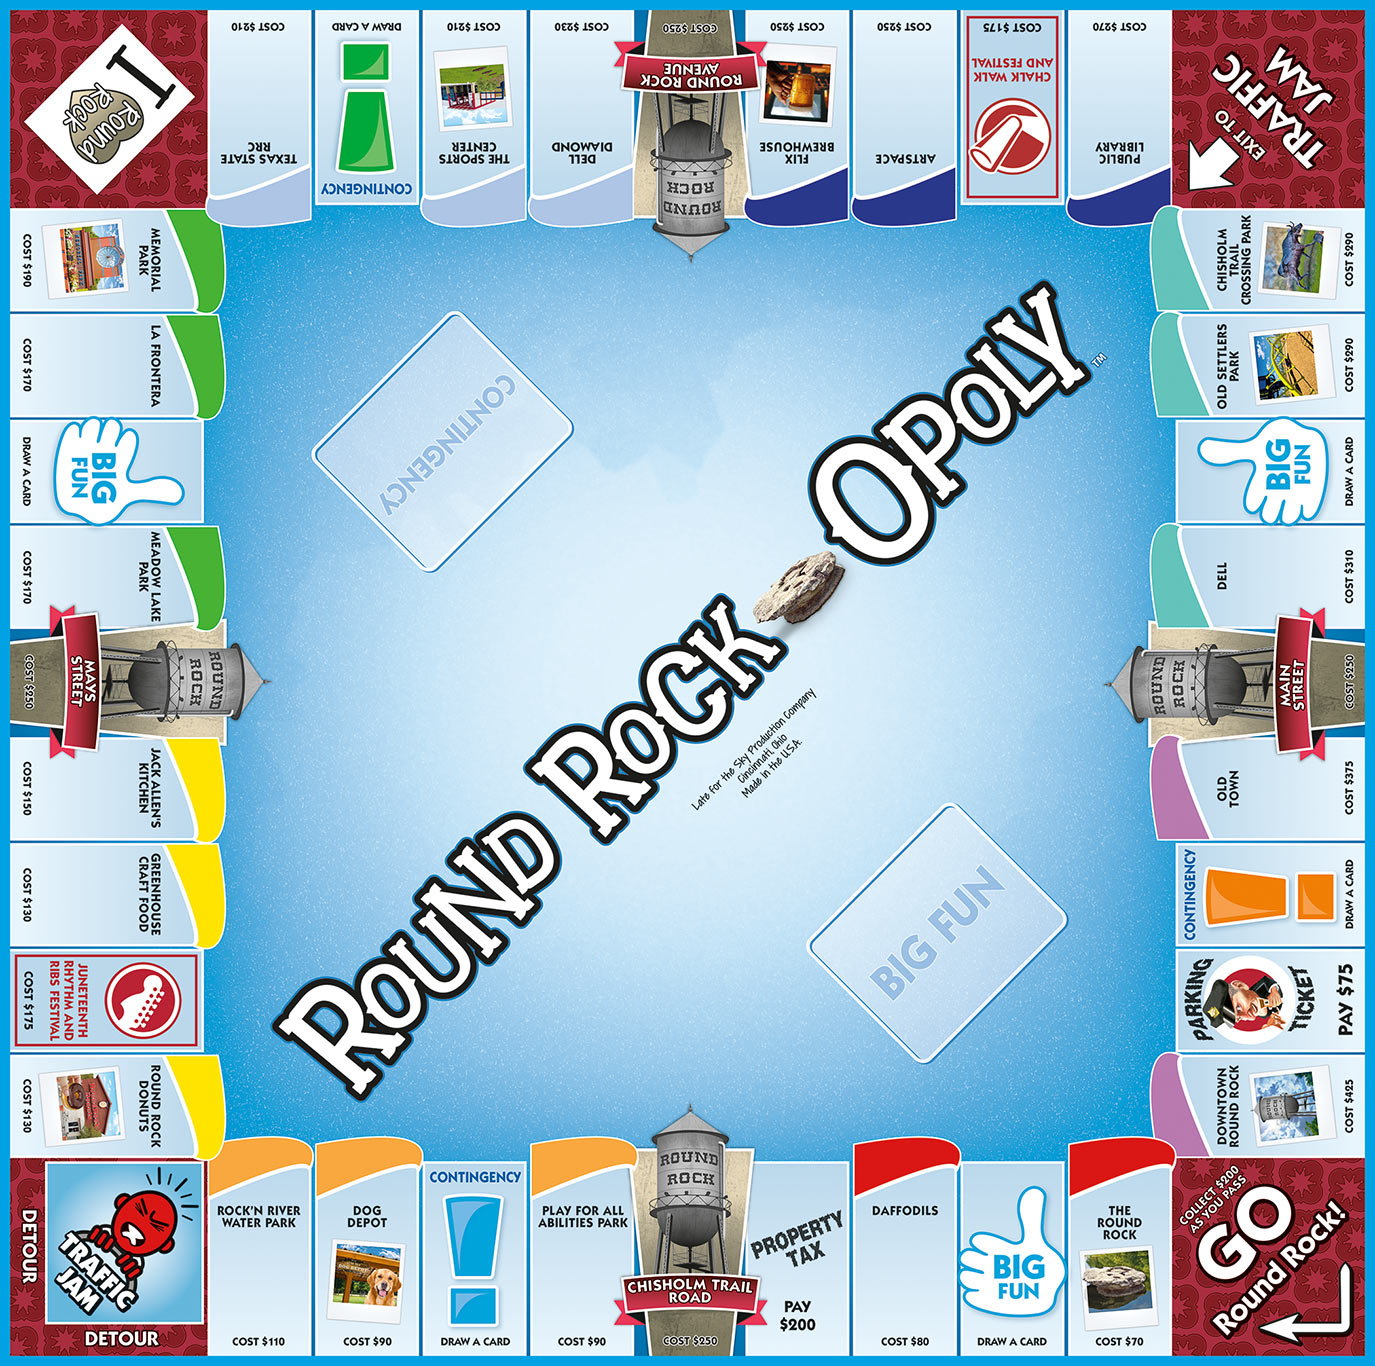 ROUND ROCK-OPOLY Board Game